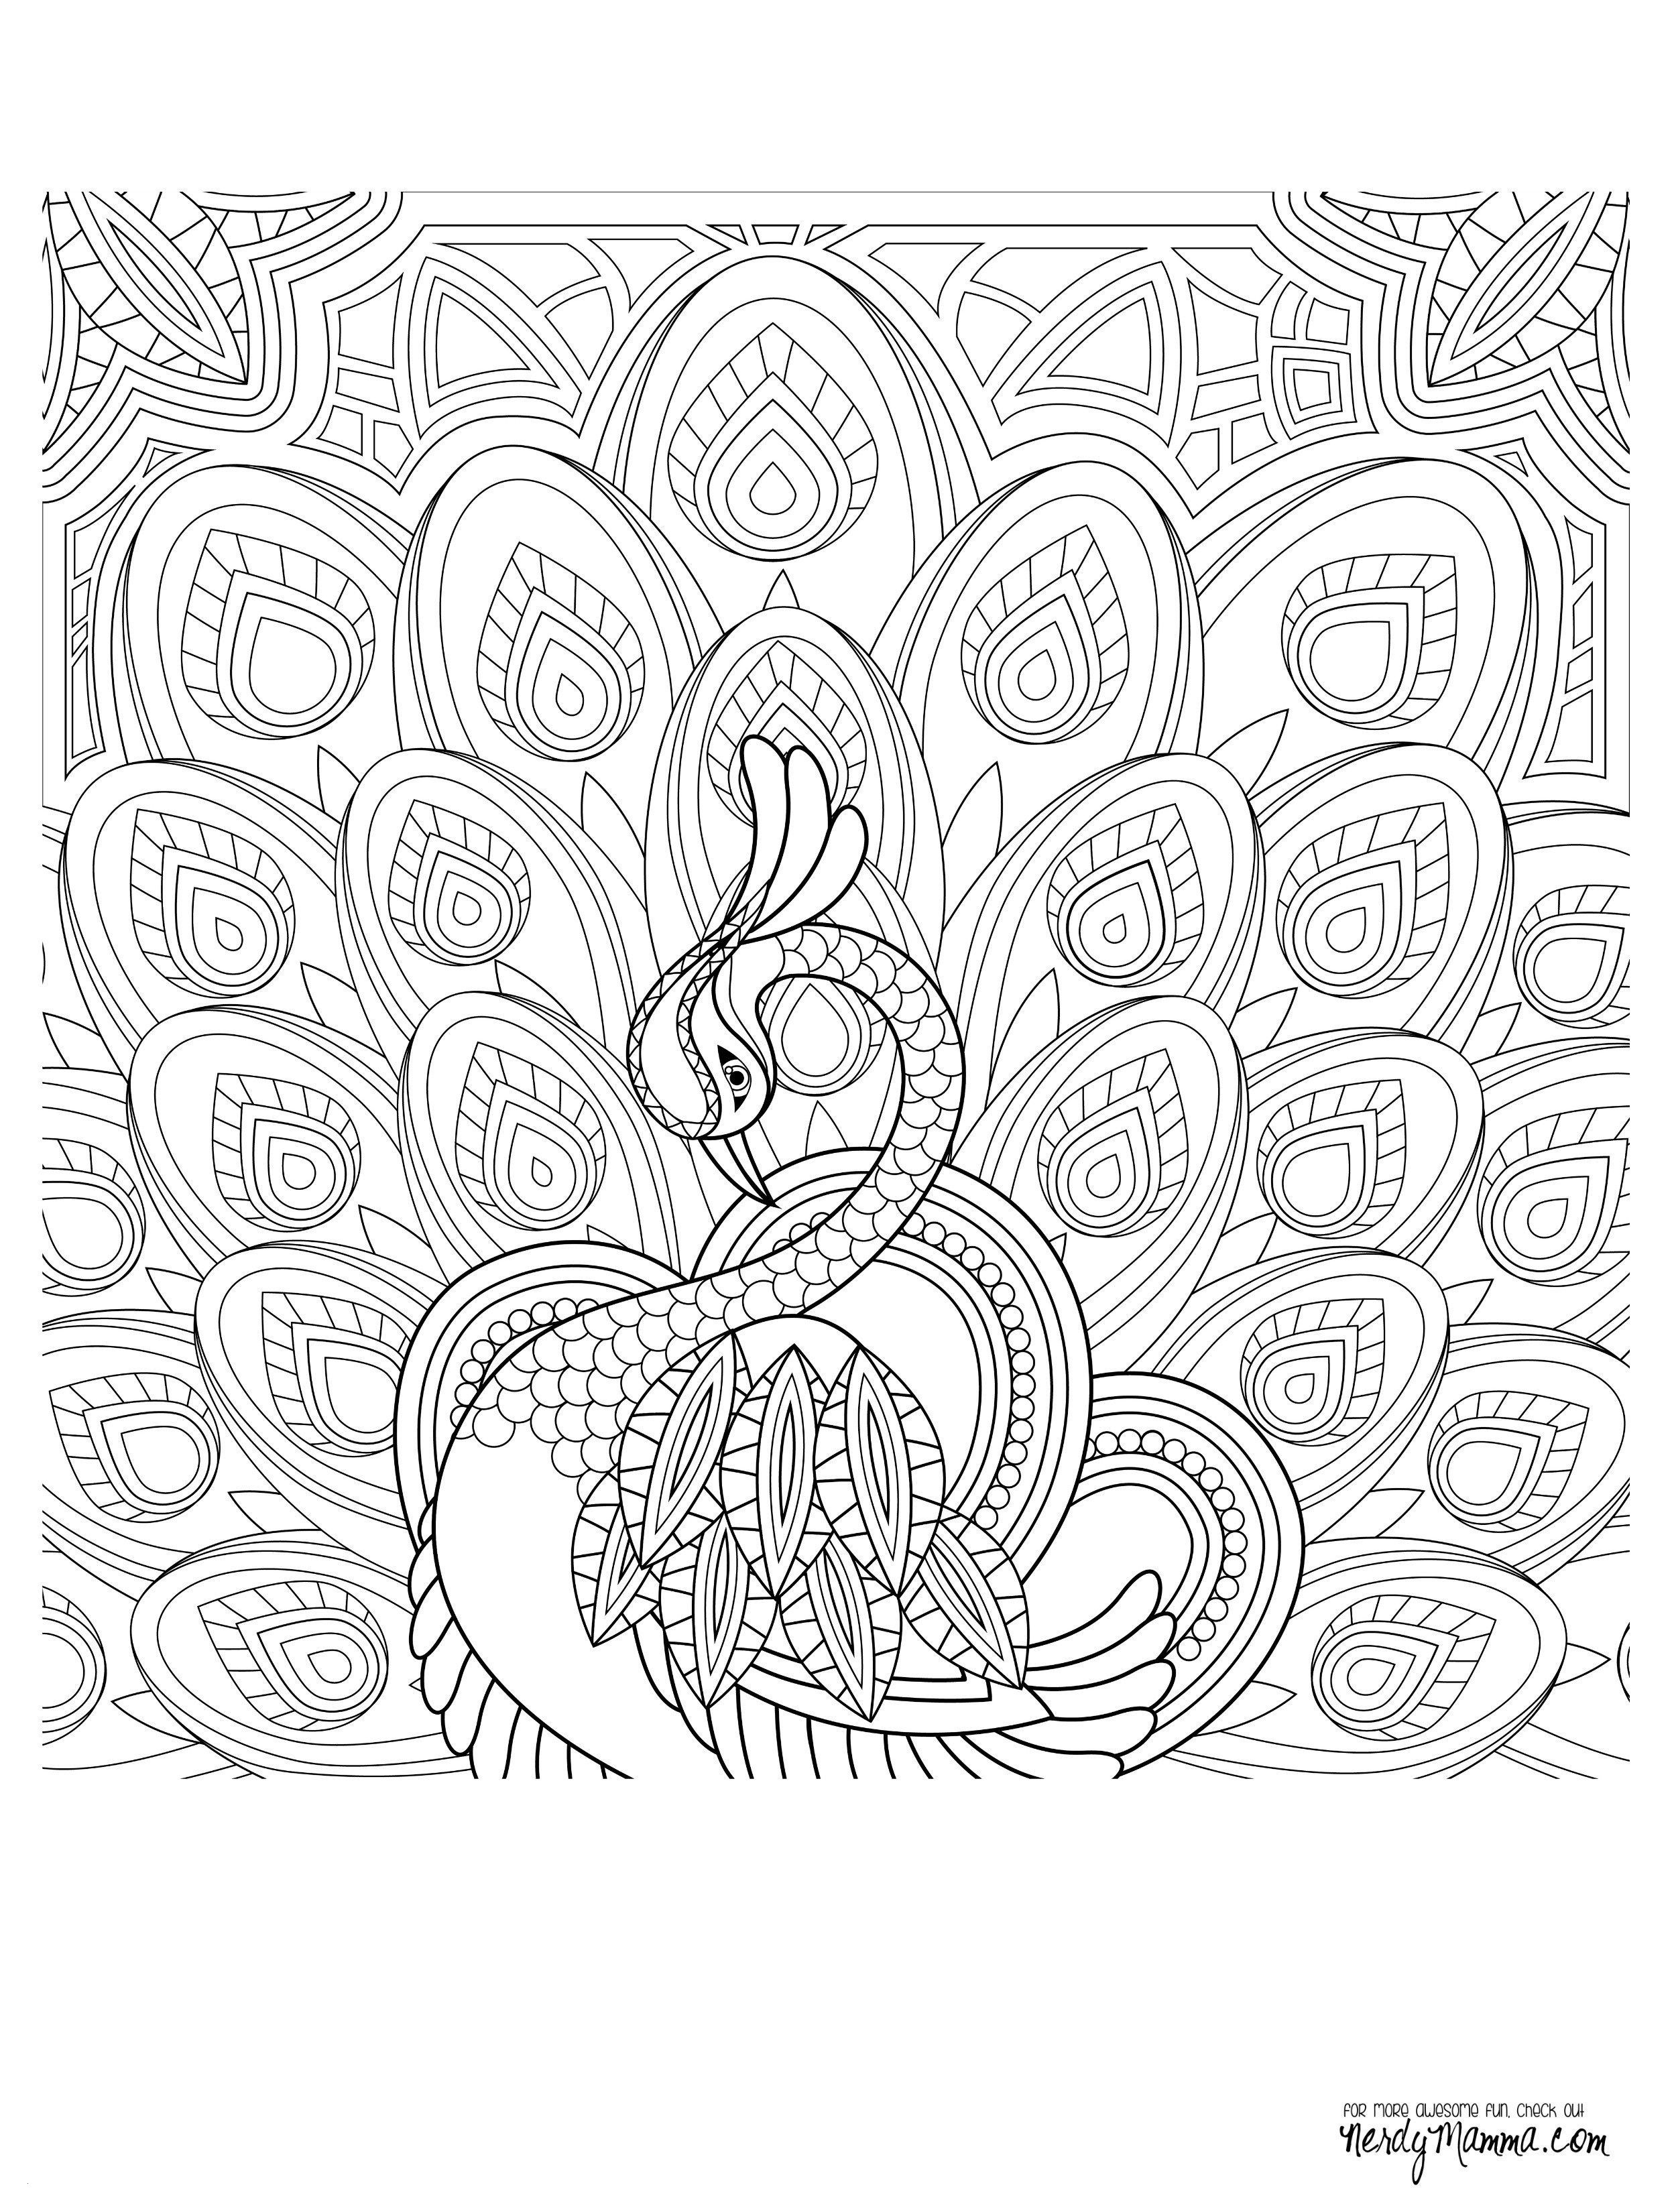 Sunny the Sunflower Coloring Page Coloring Pages for Kids New Coloring Printables 0d – Fun Time